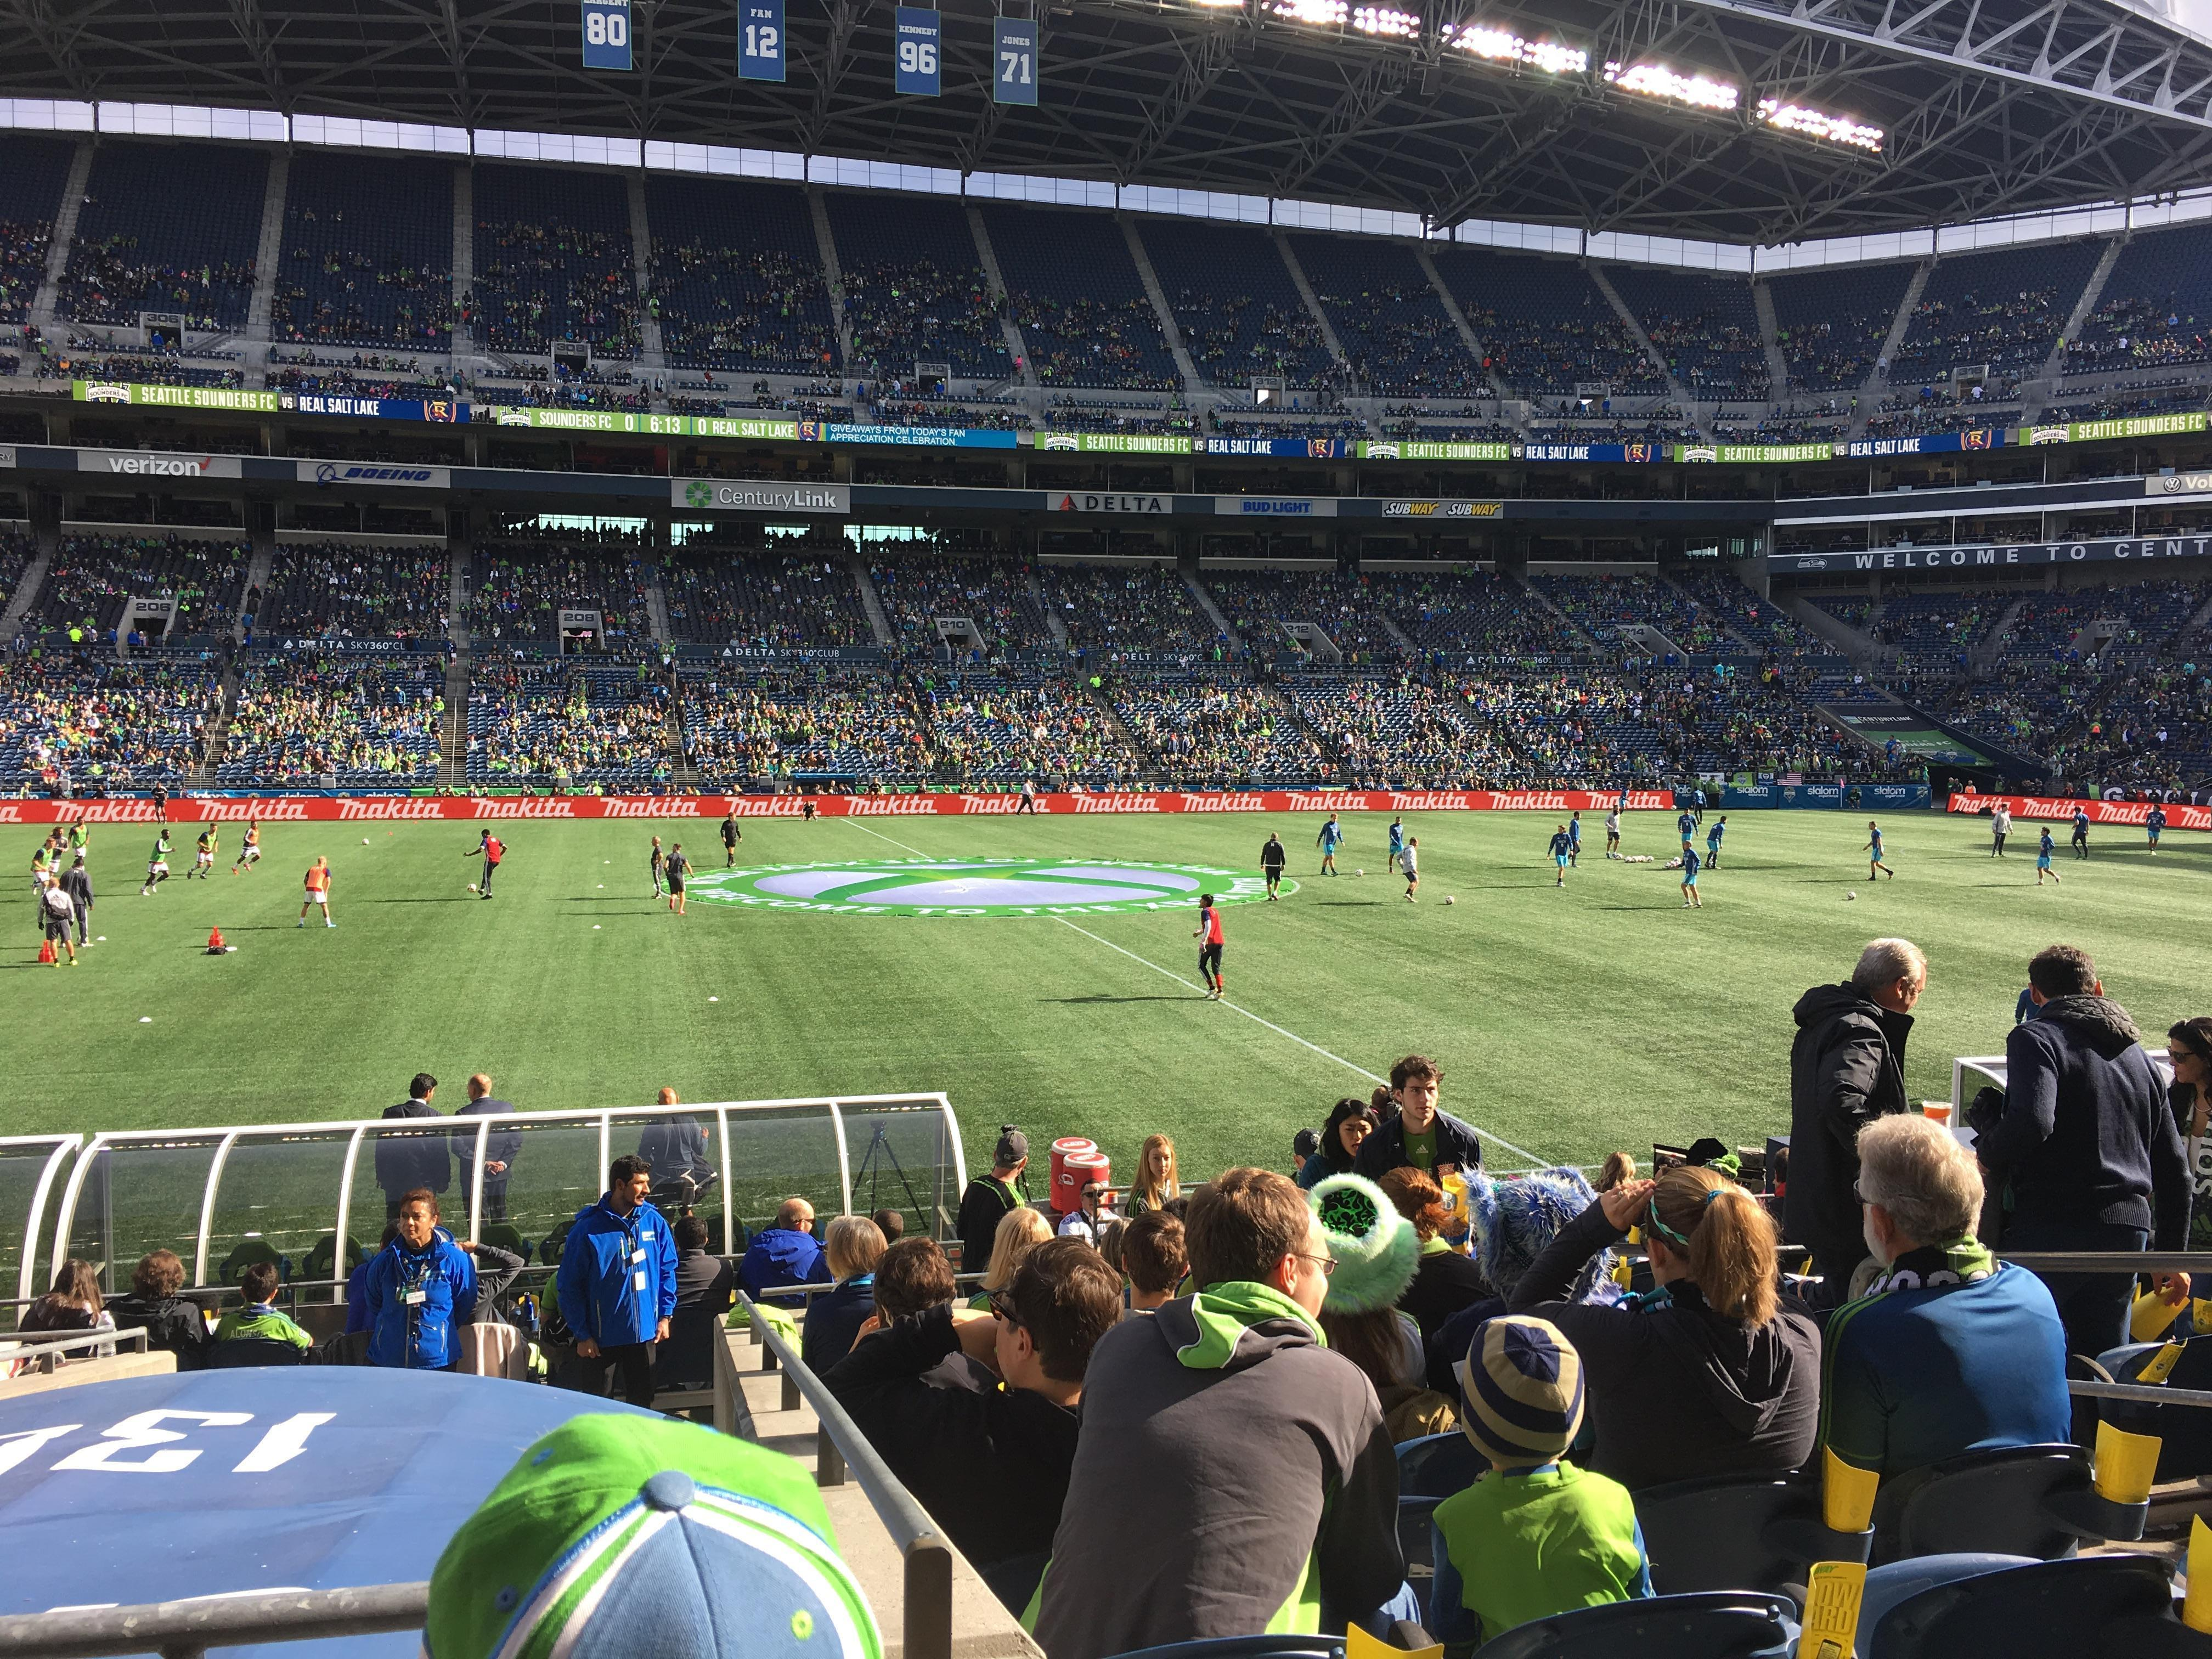 CenturyLink Field Section CHR136 Row N Seat 6